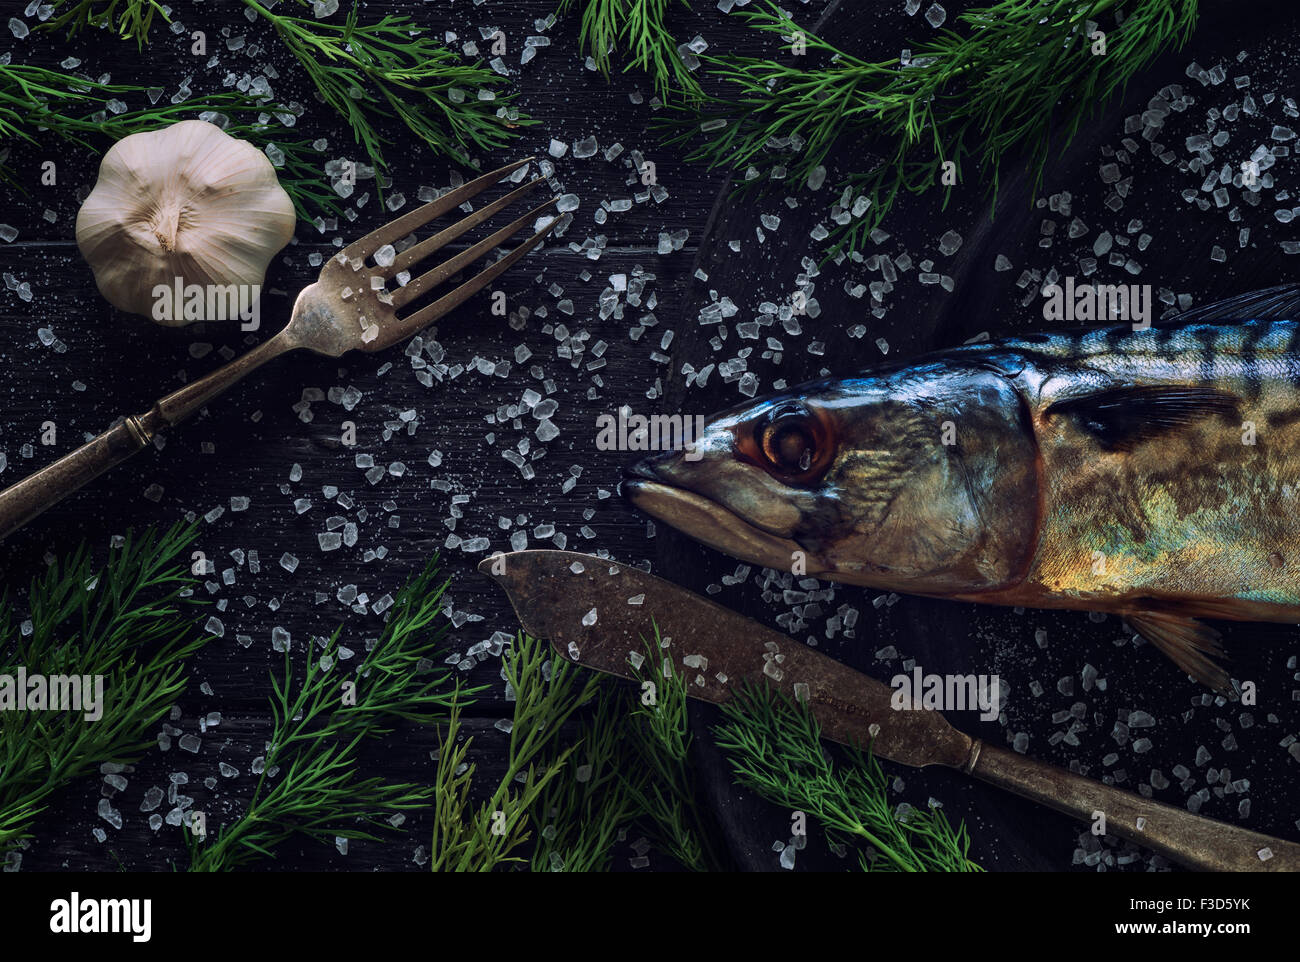 Mackerel - Stock Image